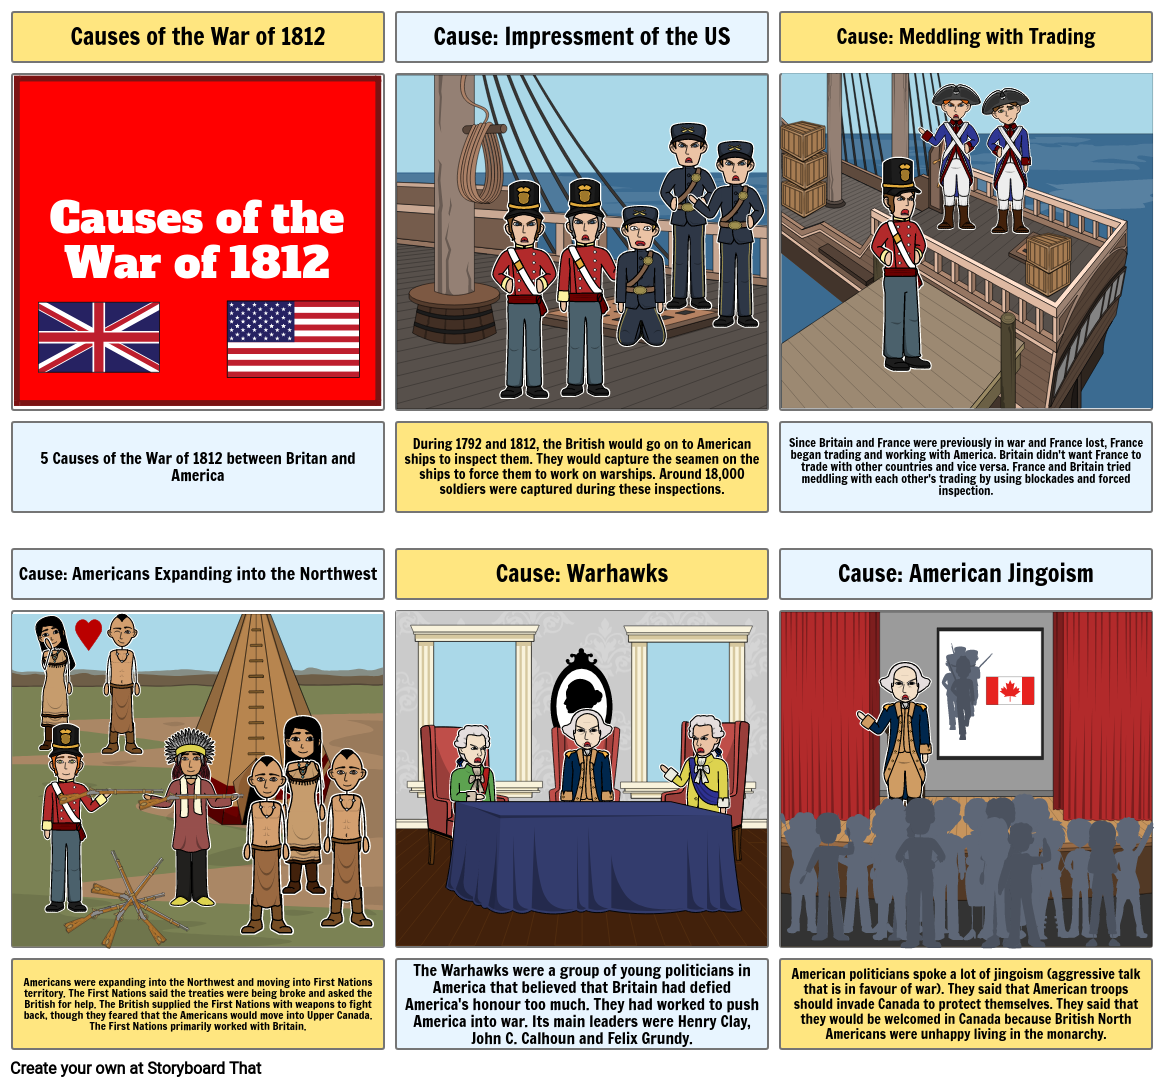 Causes of the War of 1812 (History)